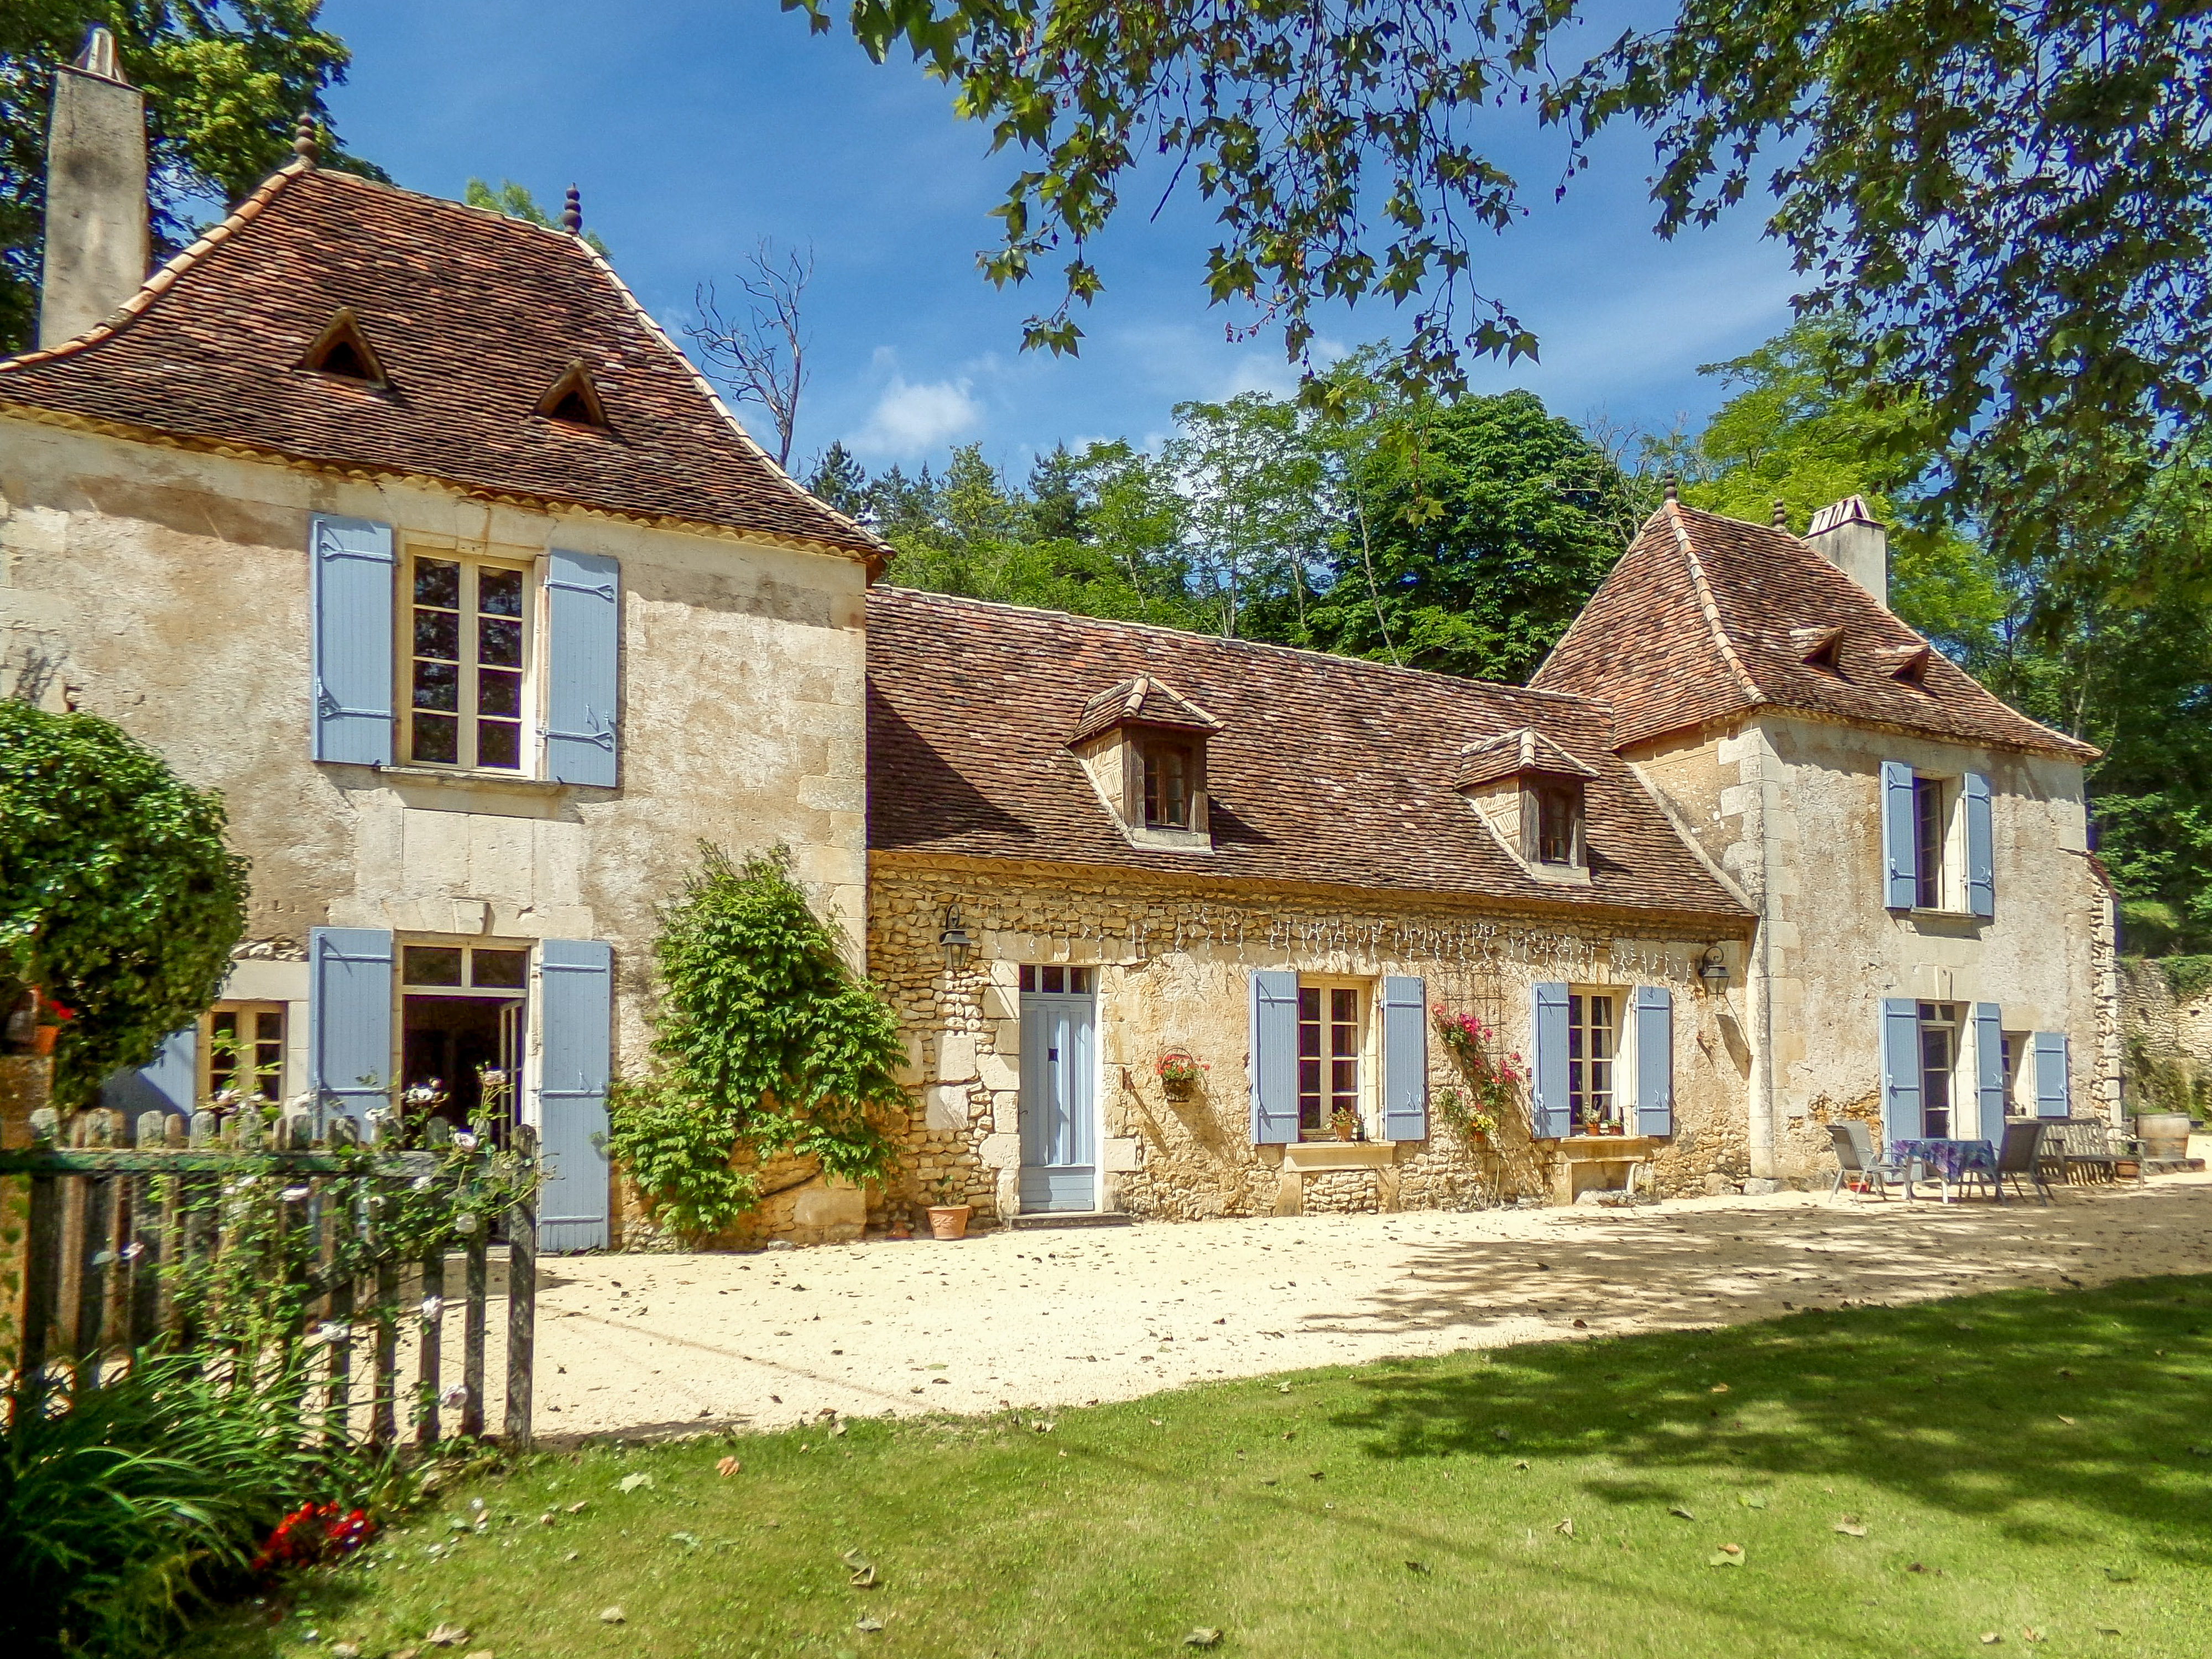 9 of the most beautiful properties for sale across France, as